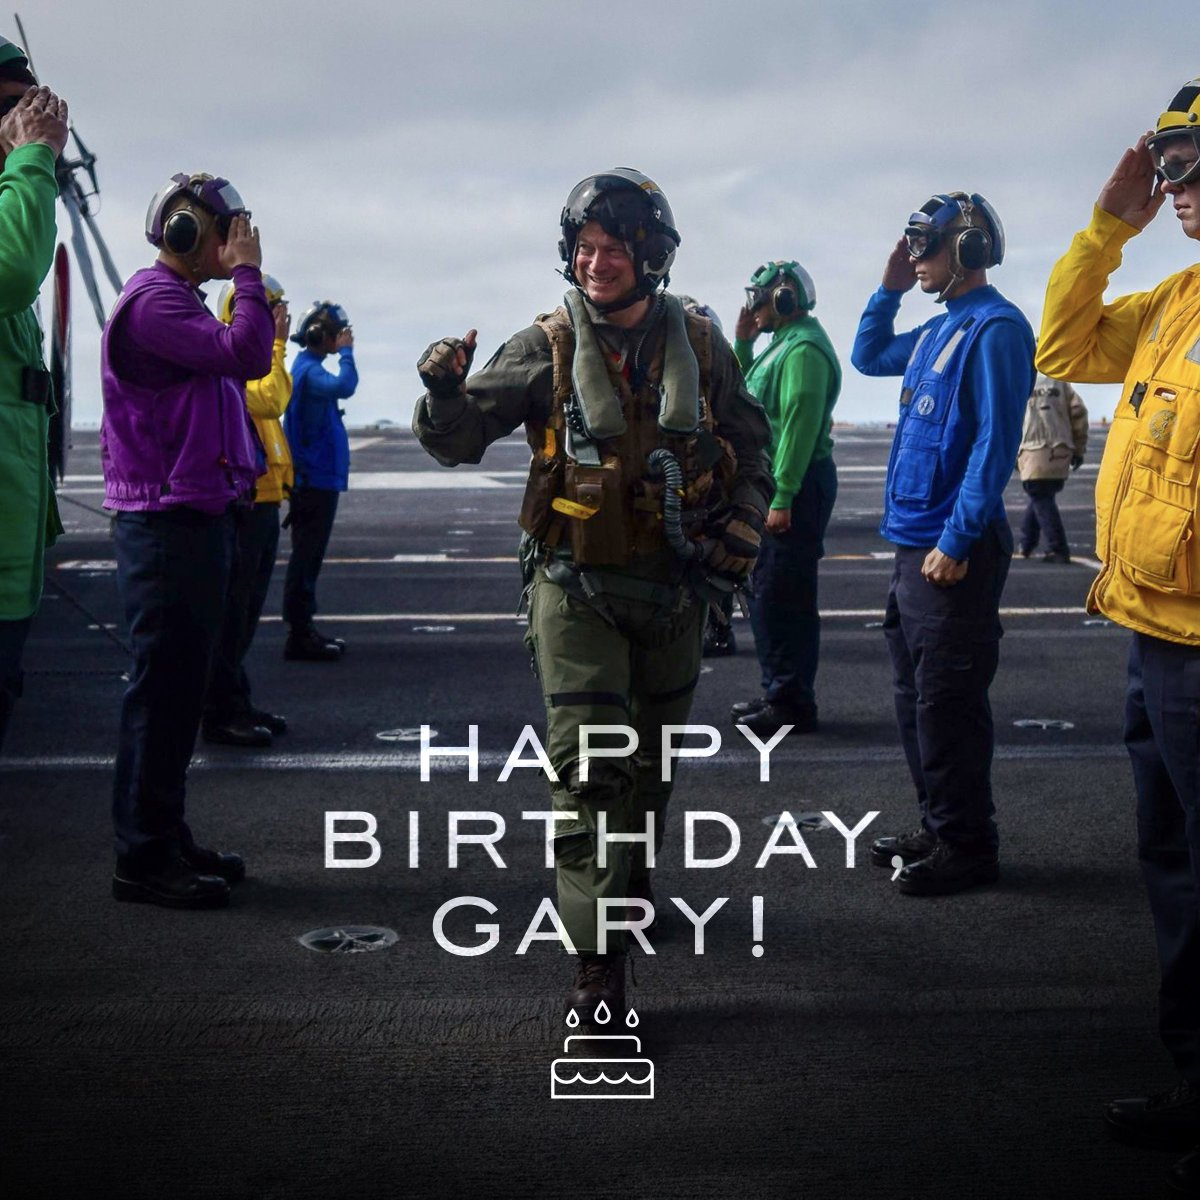 We don't call it #stpatricksday. No, we know it as Gary's Birthday! Happiest of birthdays to our founder & Chairman. RT with your birthday message 🎂